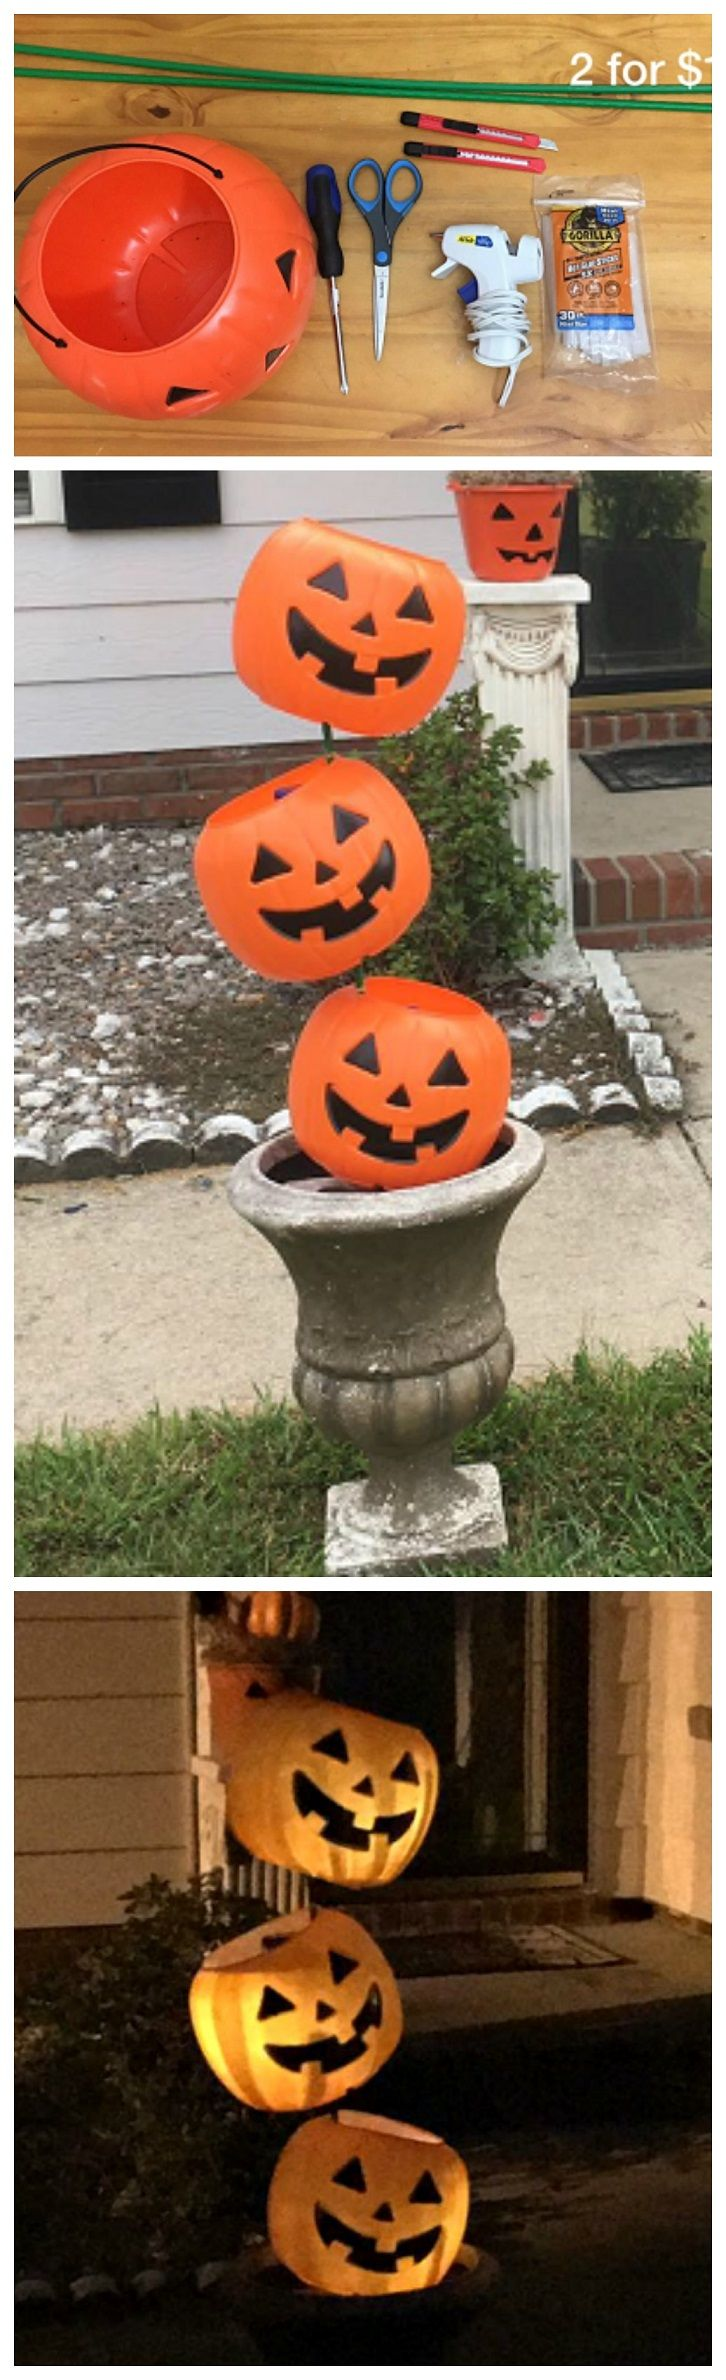 make a plastic pumpkin pail tipsy decoration for halloween such a cheap and easy craft - Easy Homemade Halloween Decorations